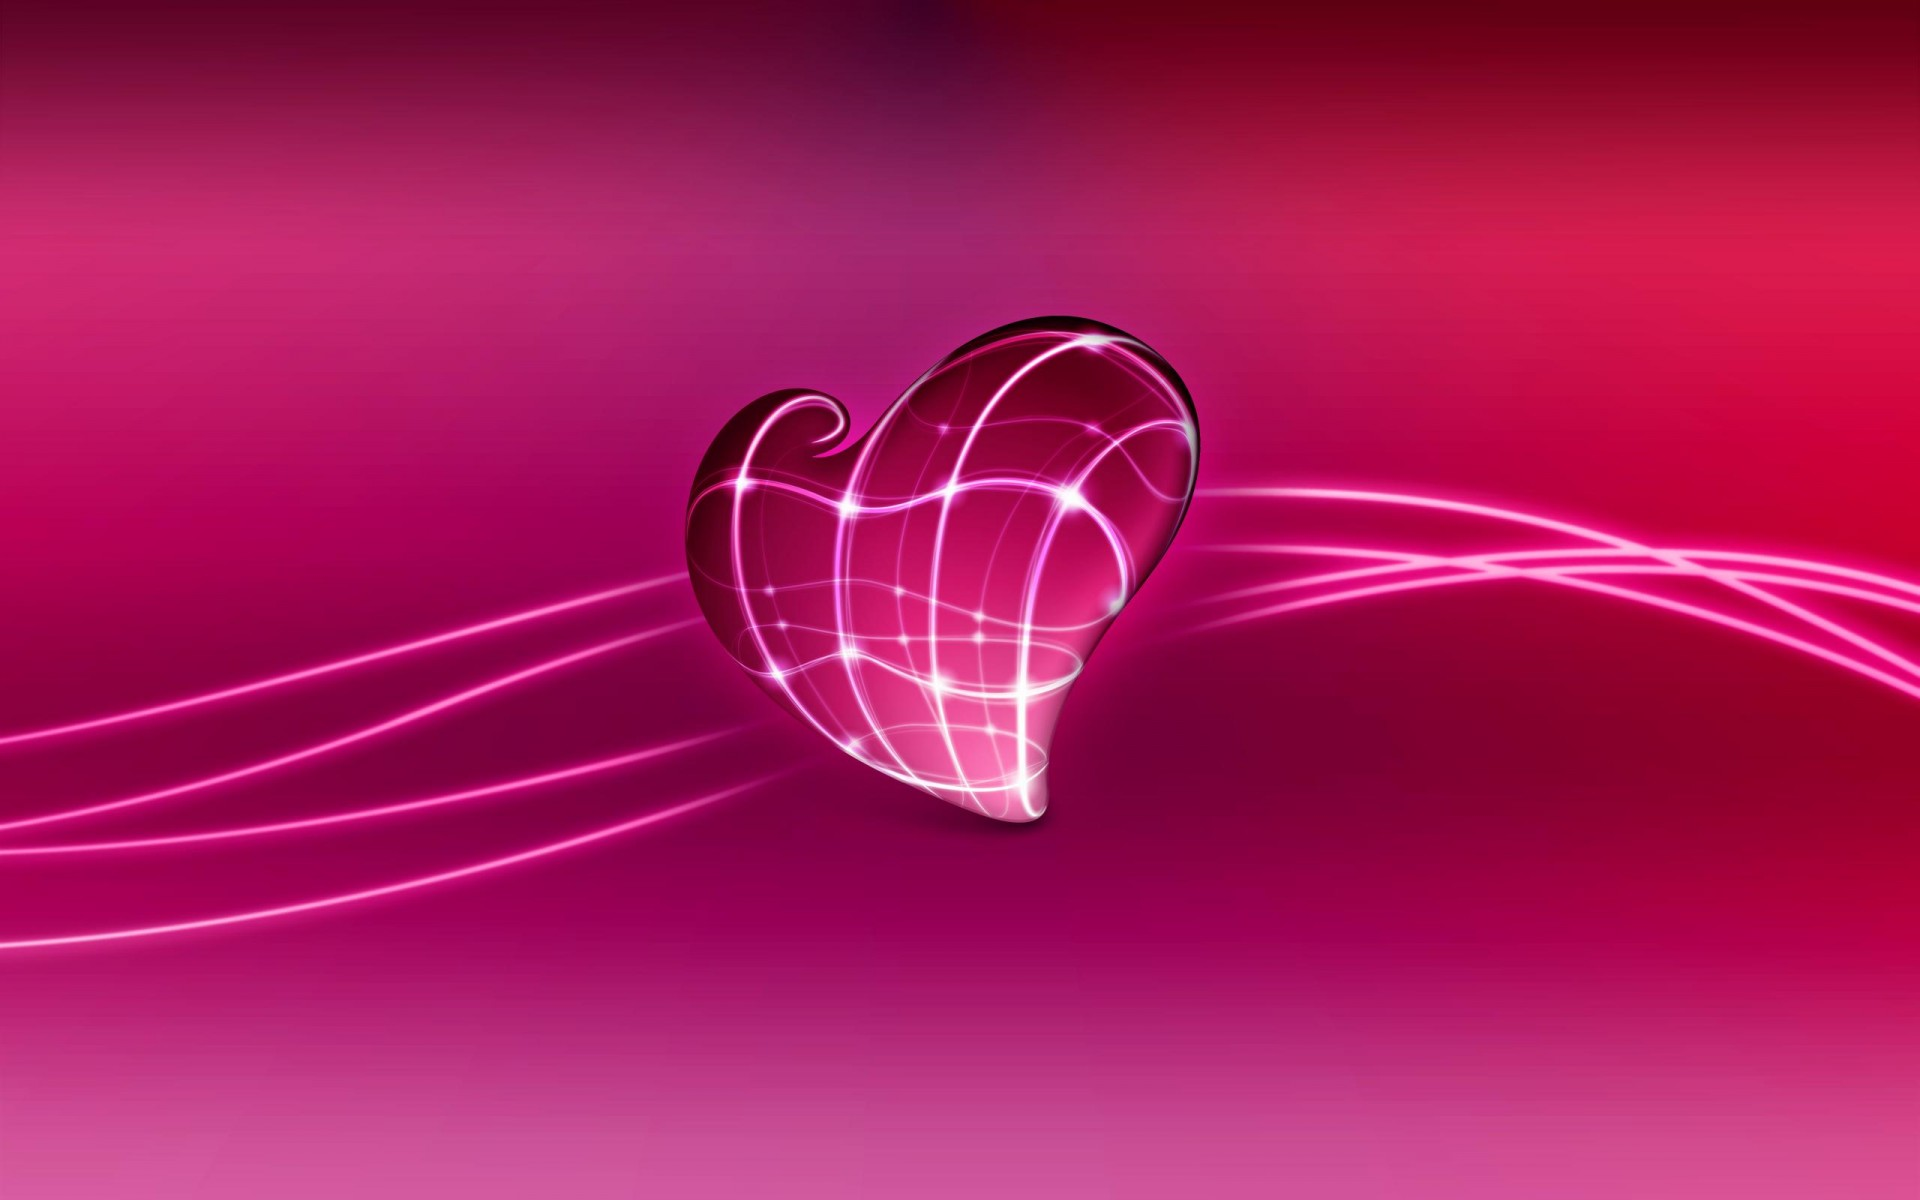 3D Wallpaper Love Heart